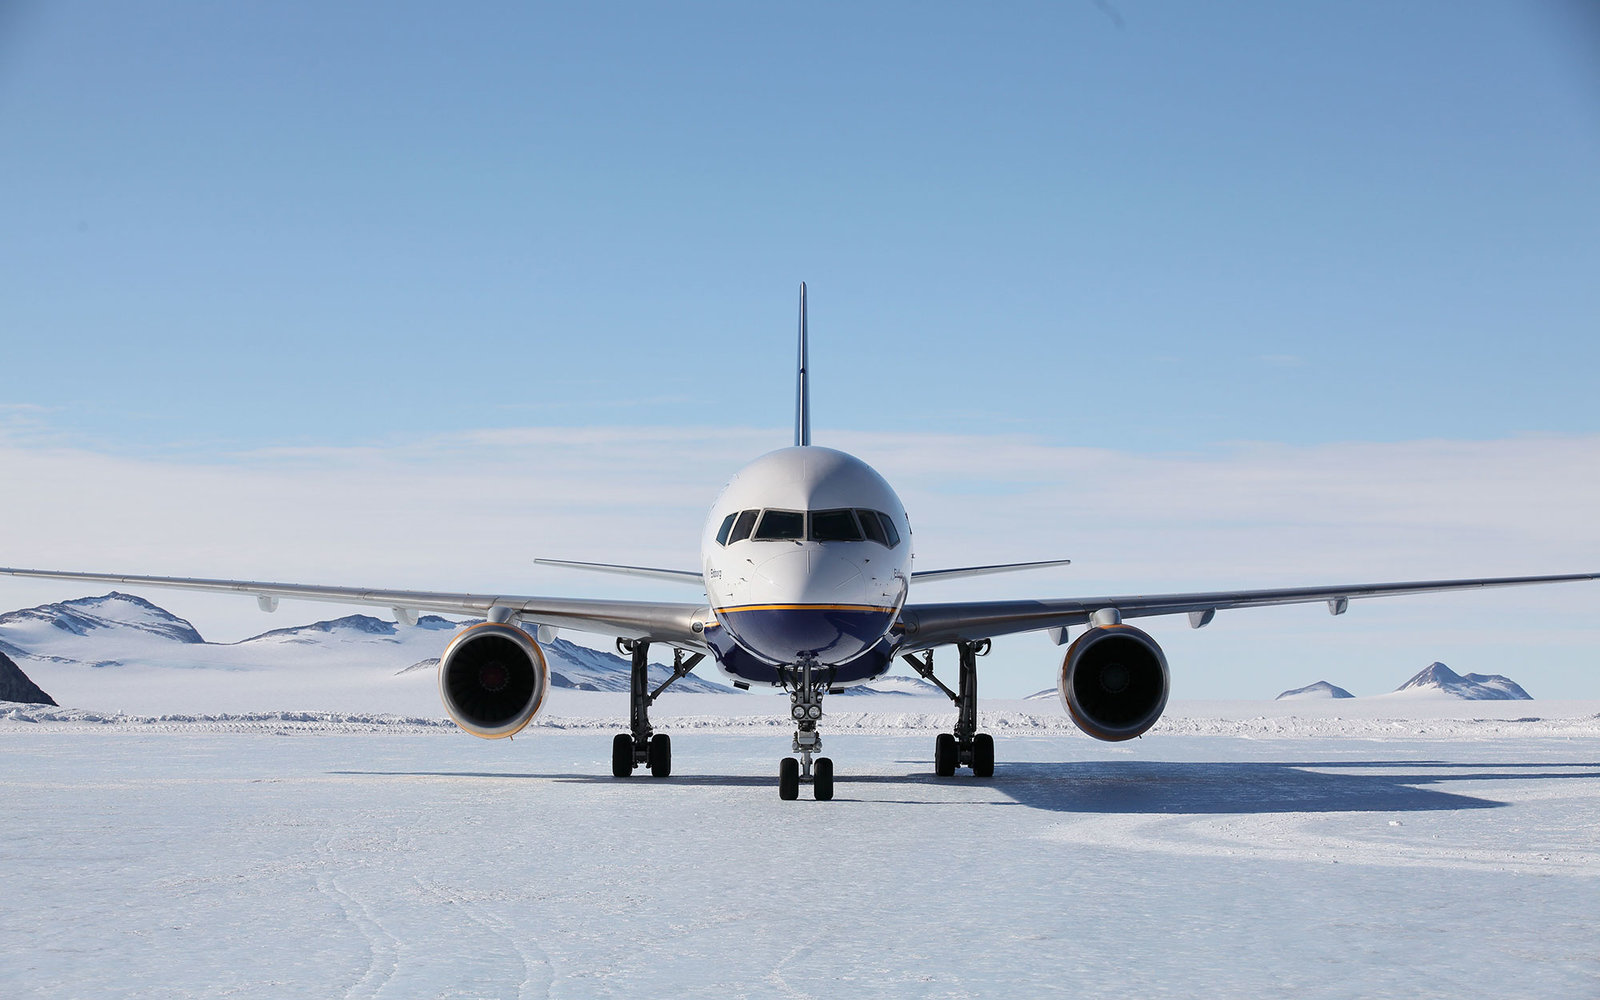 Passenger Airline Lands In Antarctica Travel Leisure